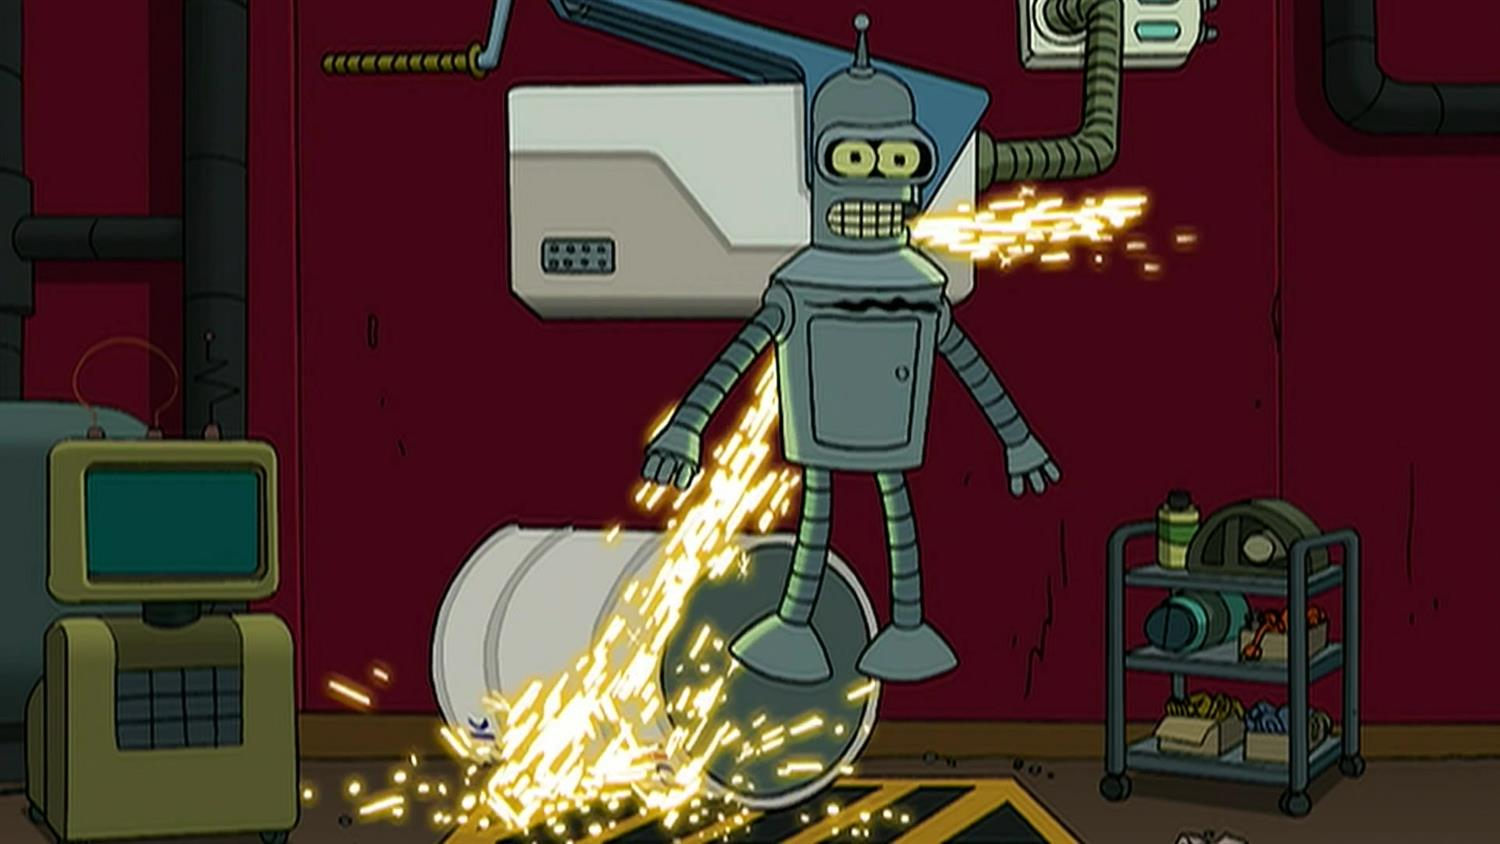 Bender's Accident